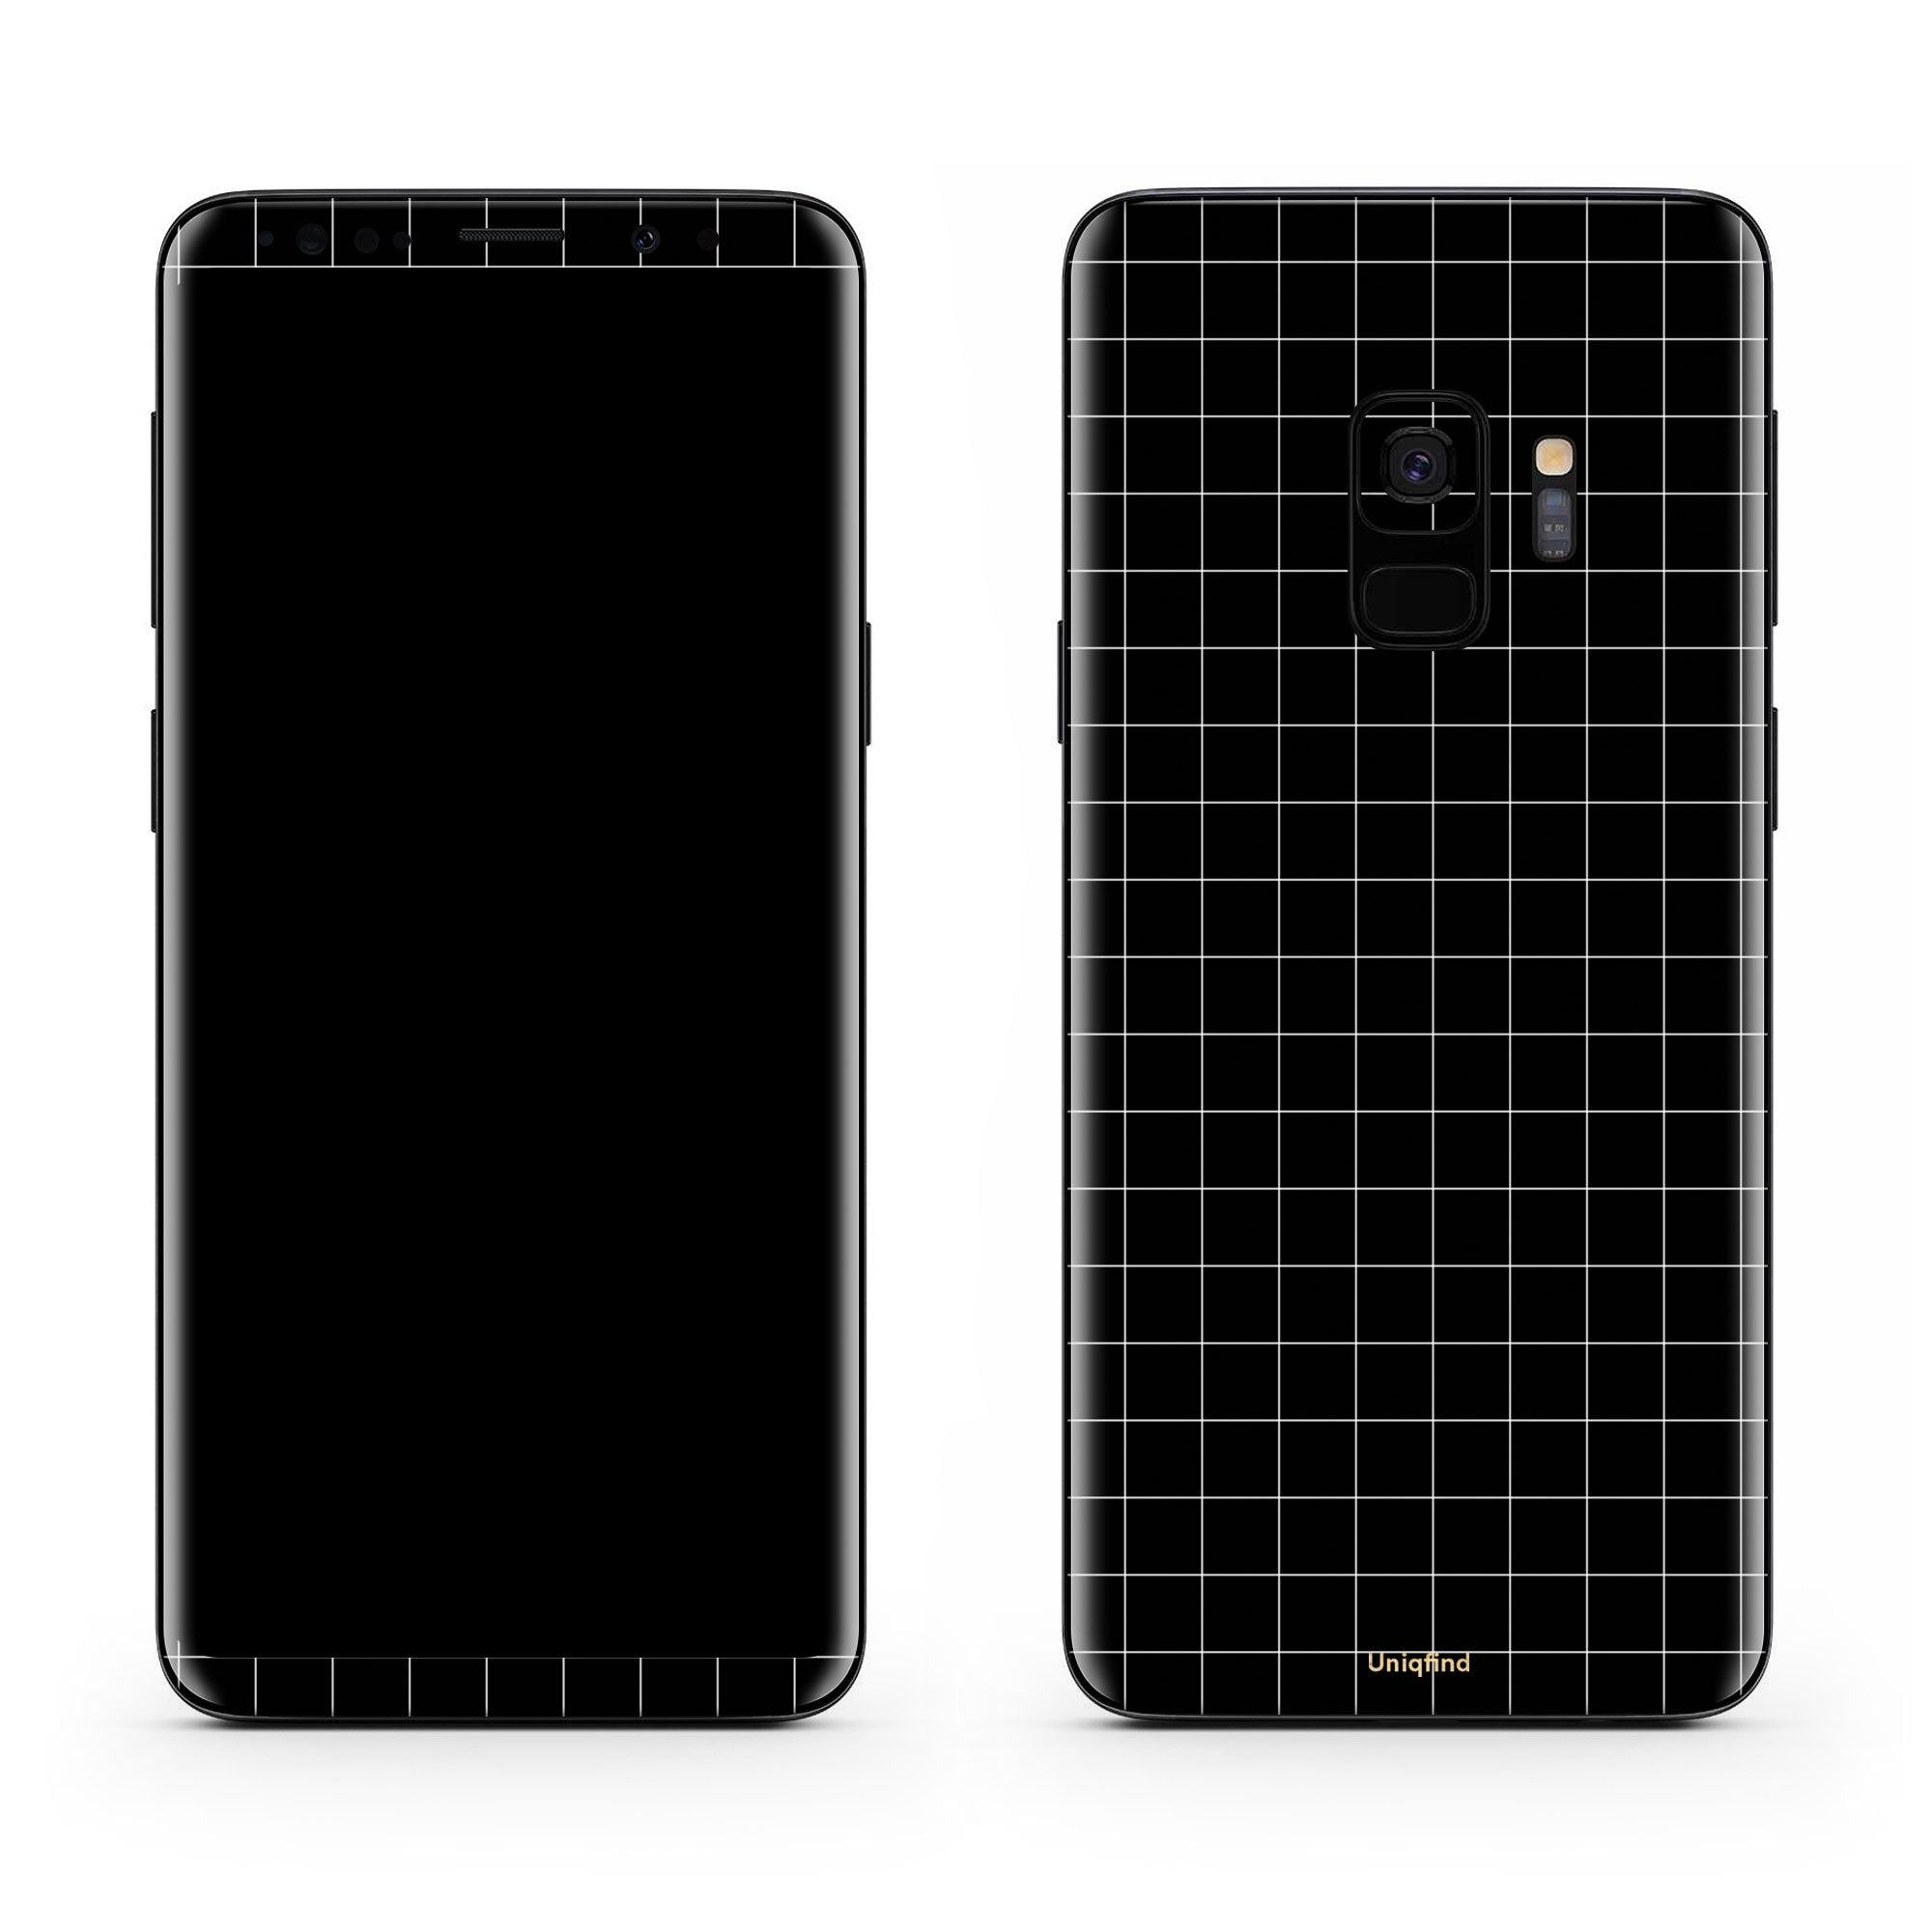 Black Grid Line Galaxy S9 Plus Skin + Case